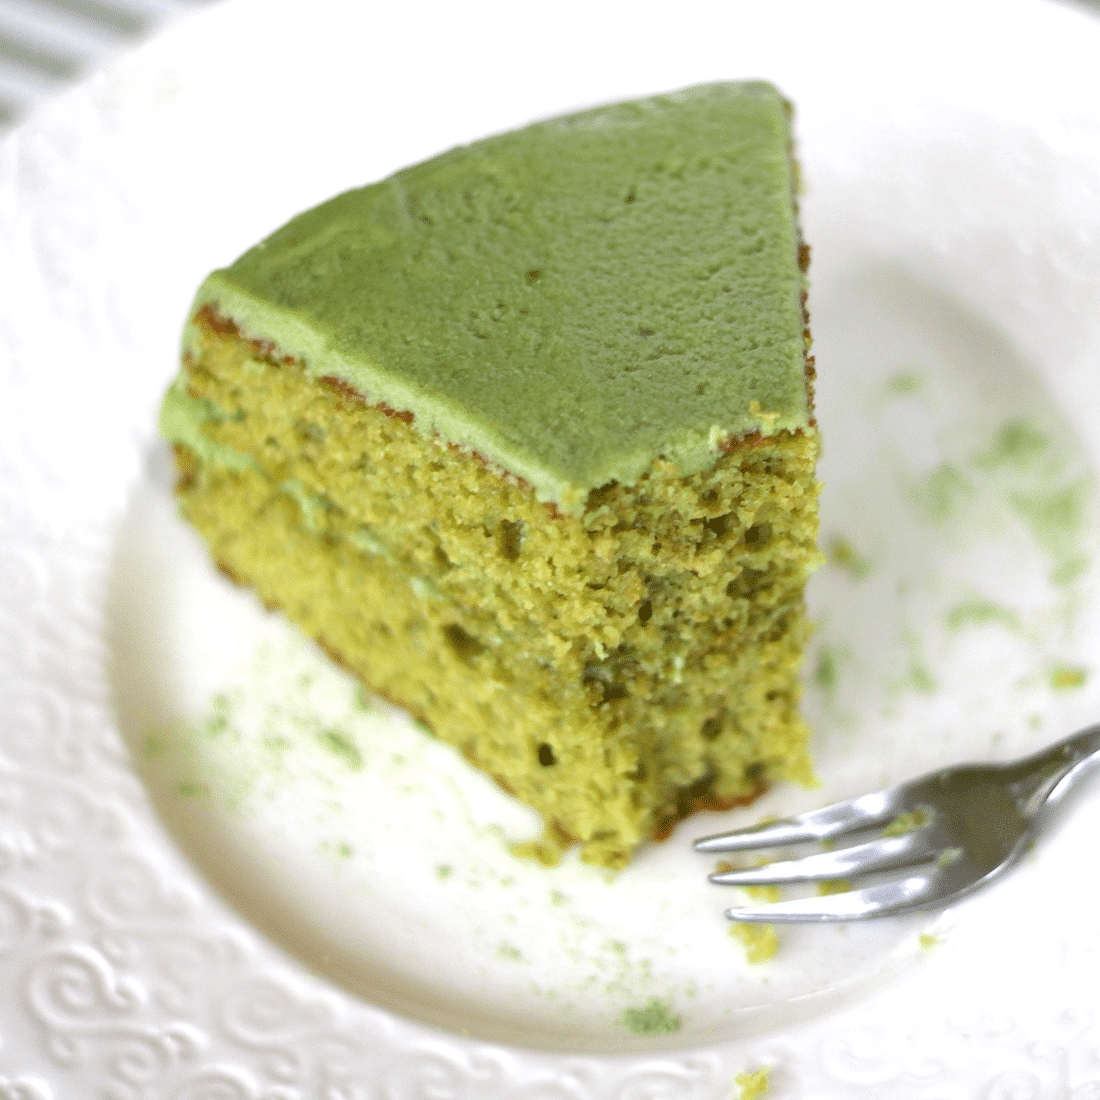 Healthy Matcha Green Tea Cake recipe (whole wheat, high protein) - Desserts with Benefits